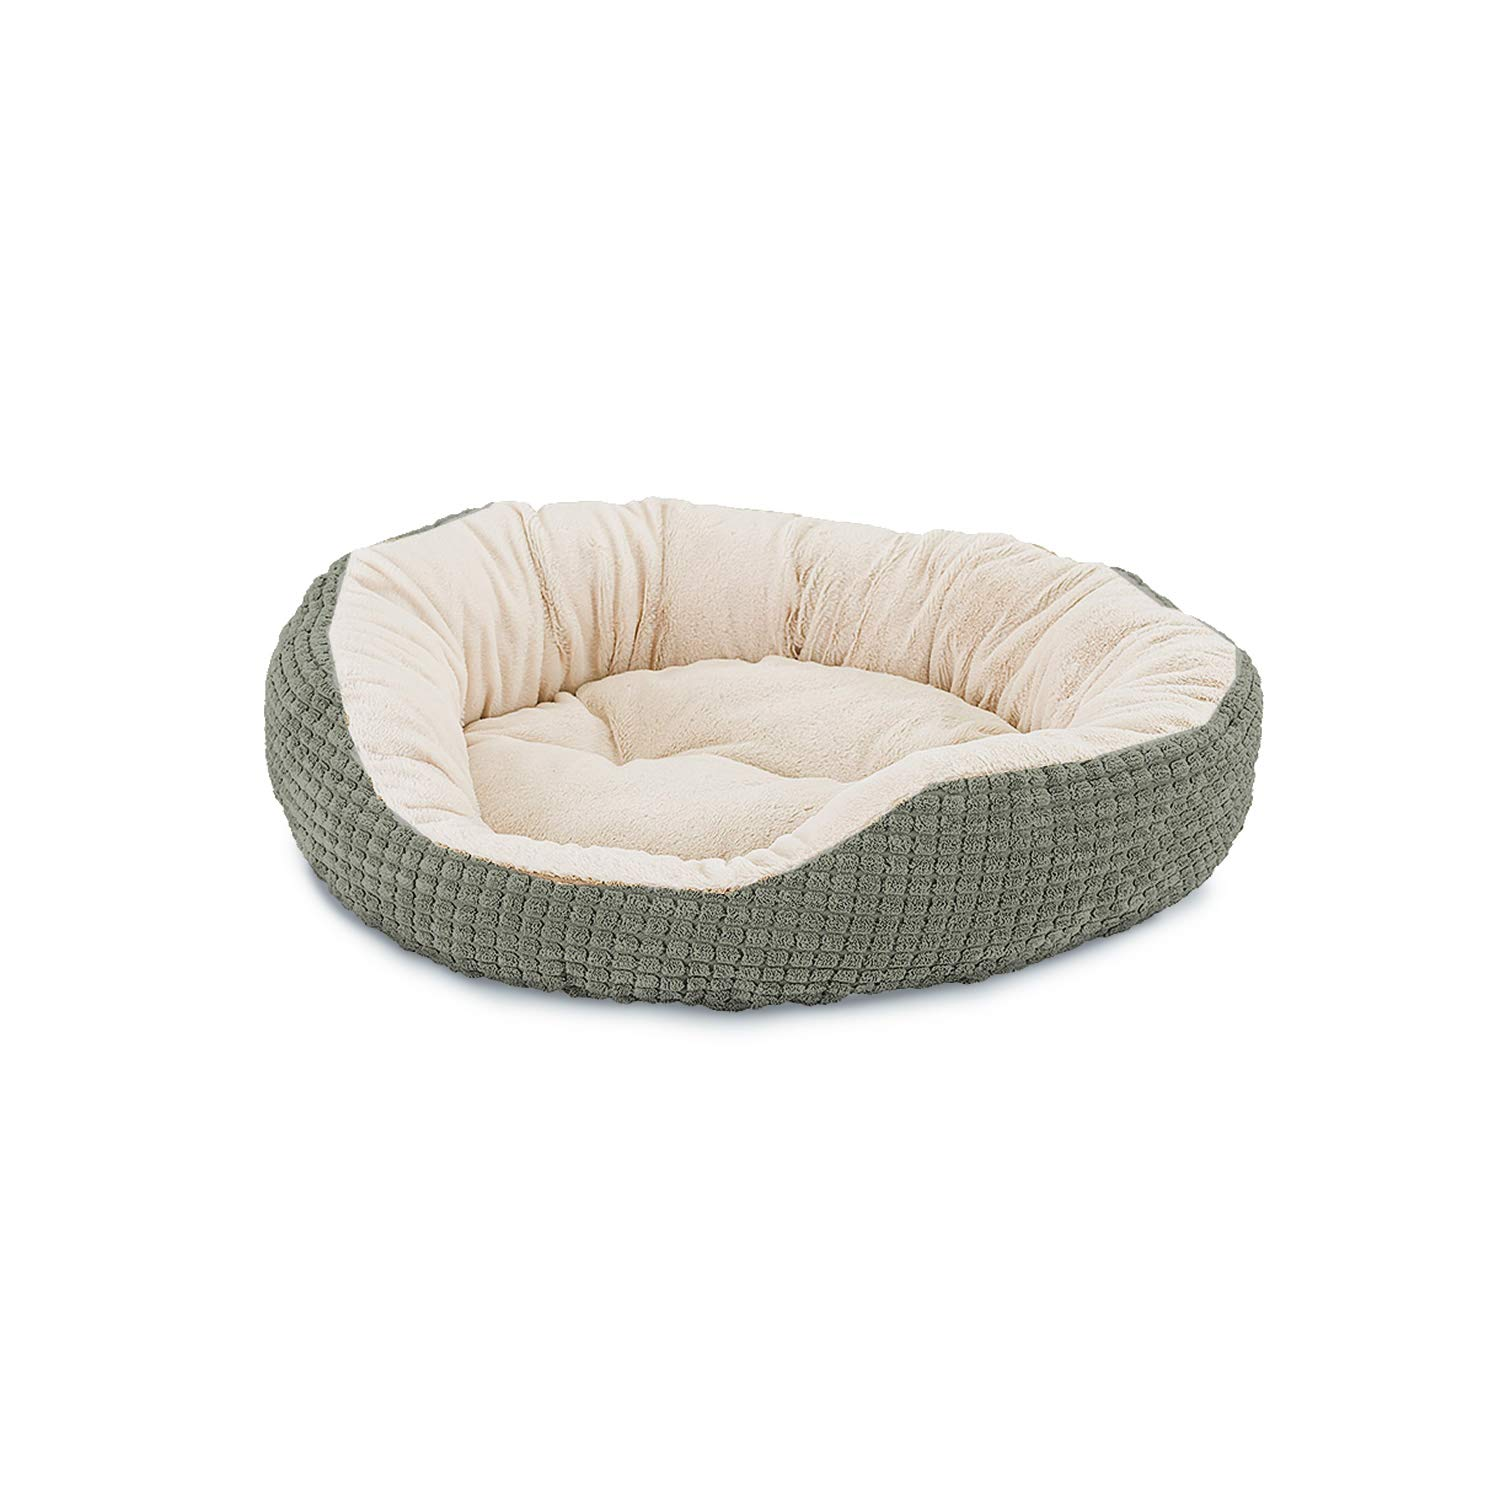 Ethical Pets Sleep Zone Corn Grain Step-in Pet Bed, 22 , Sage